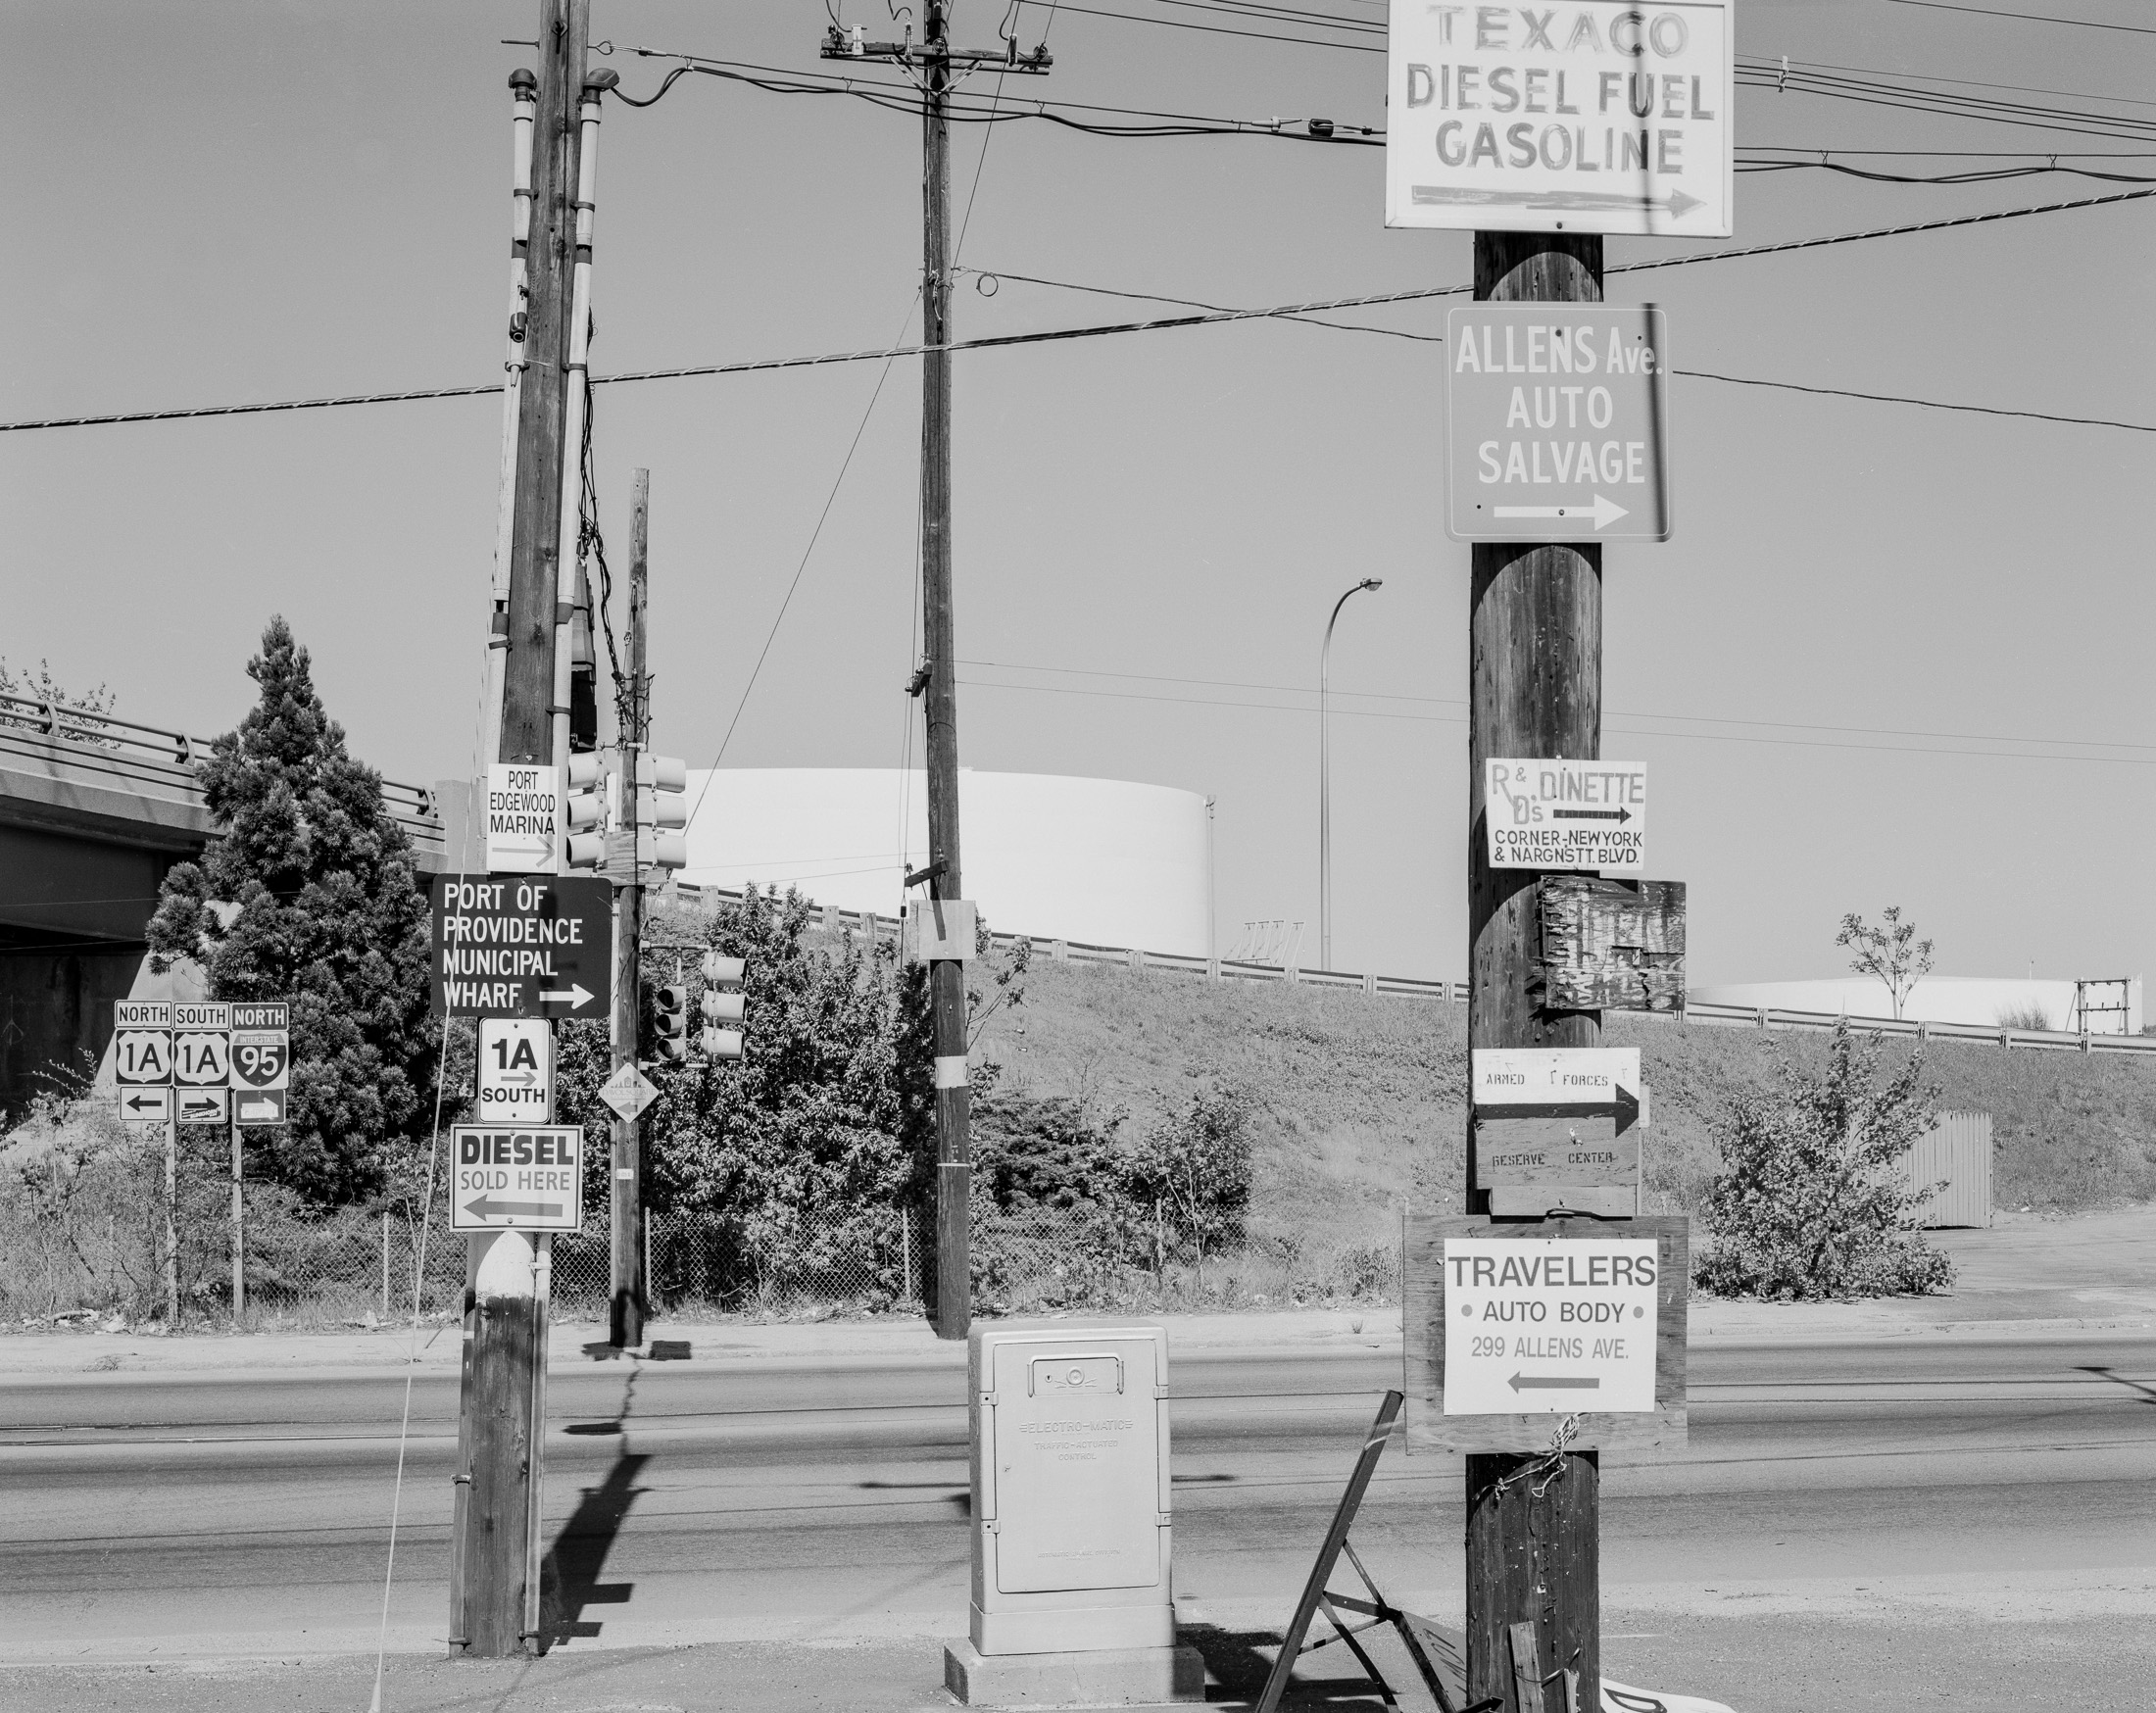 Allens Ave, 1994